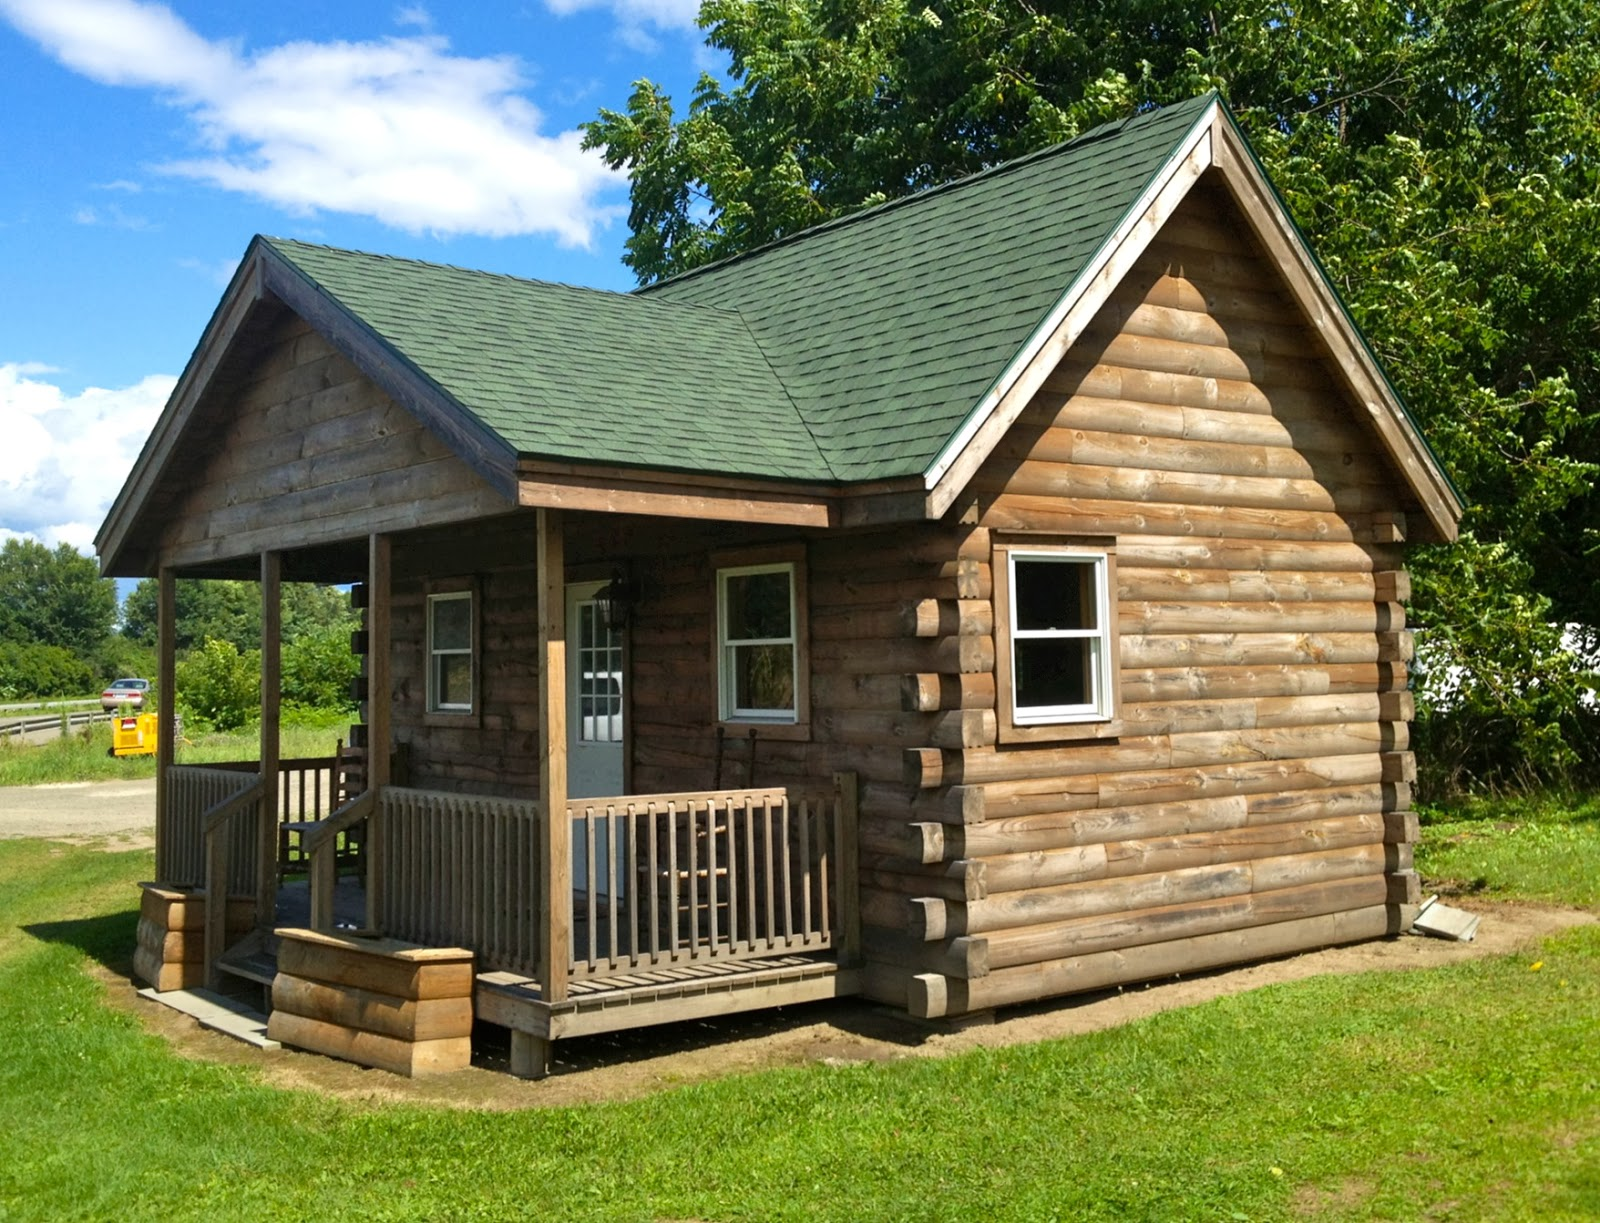 Small scale homes tiny home near binghamton ny Small eco home plans